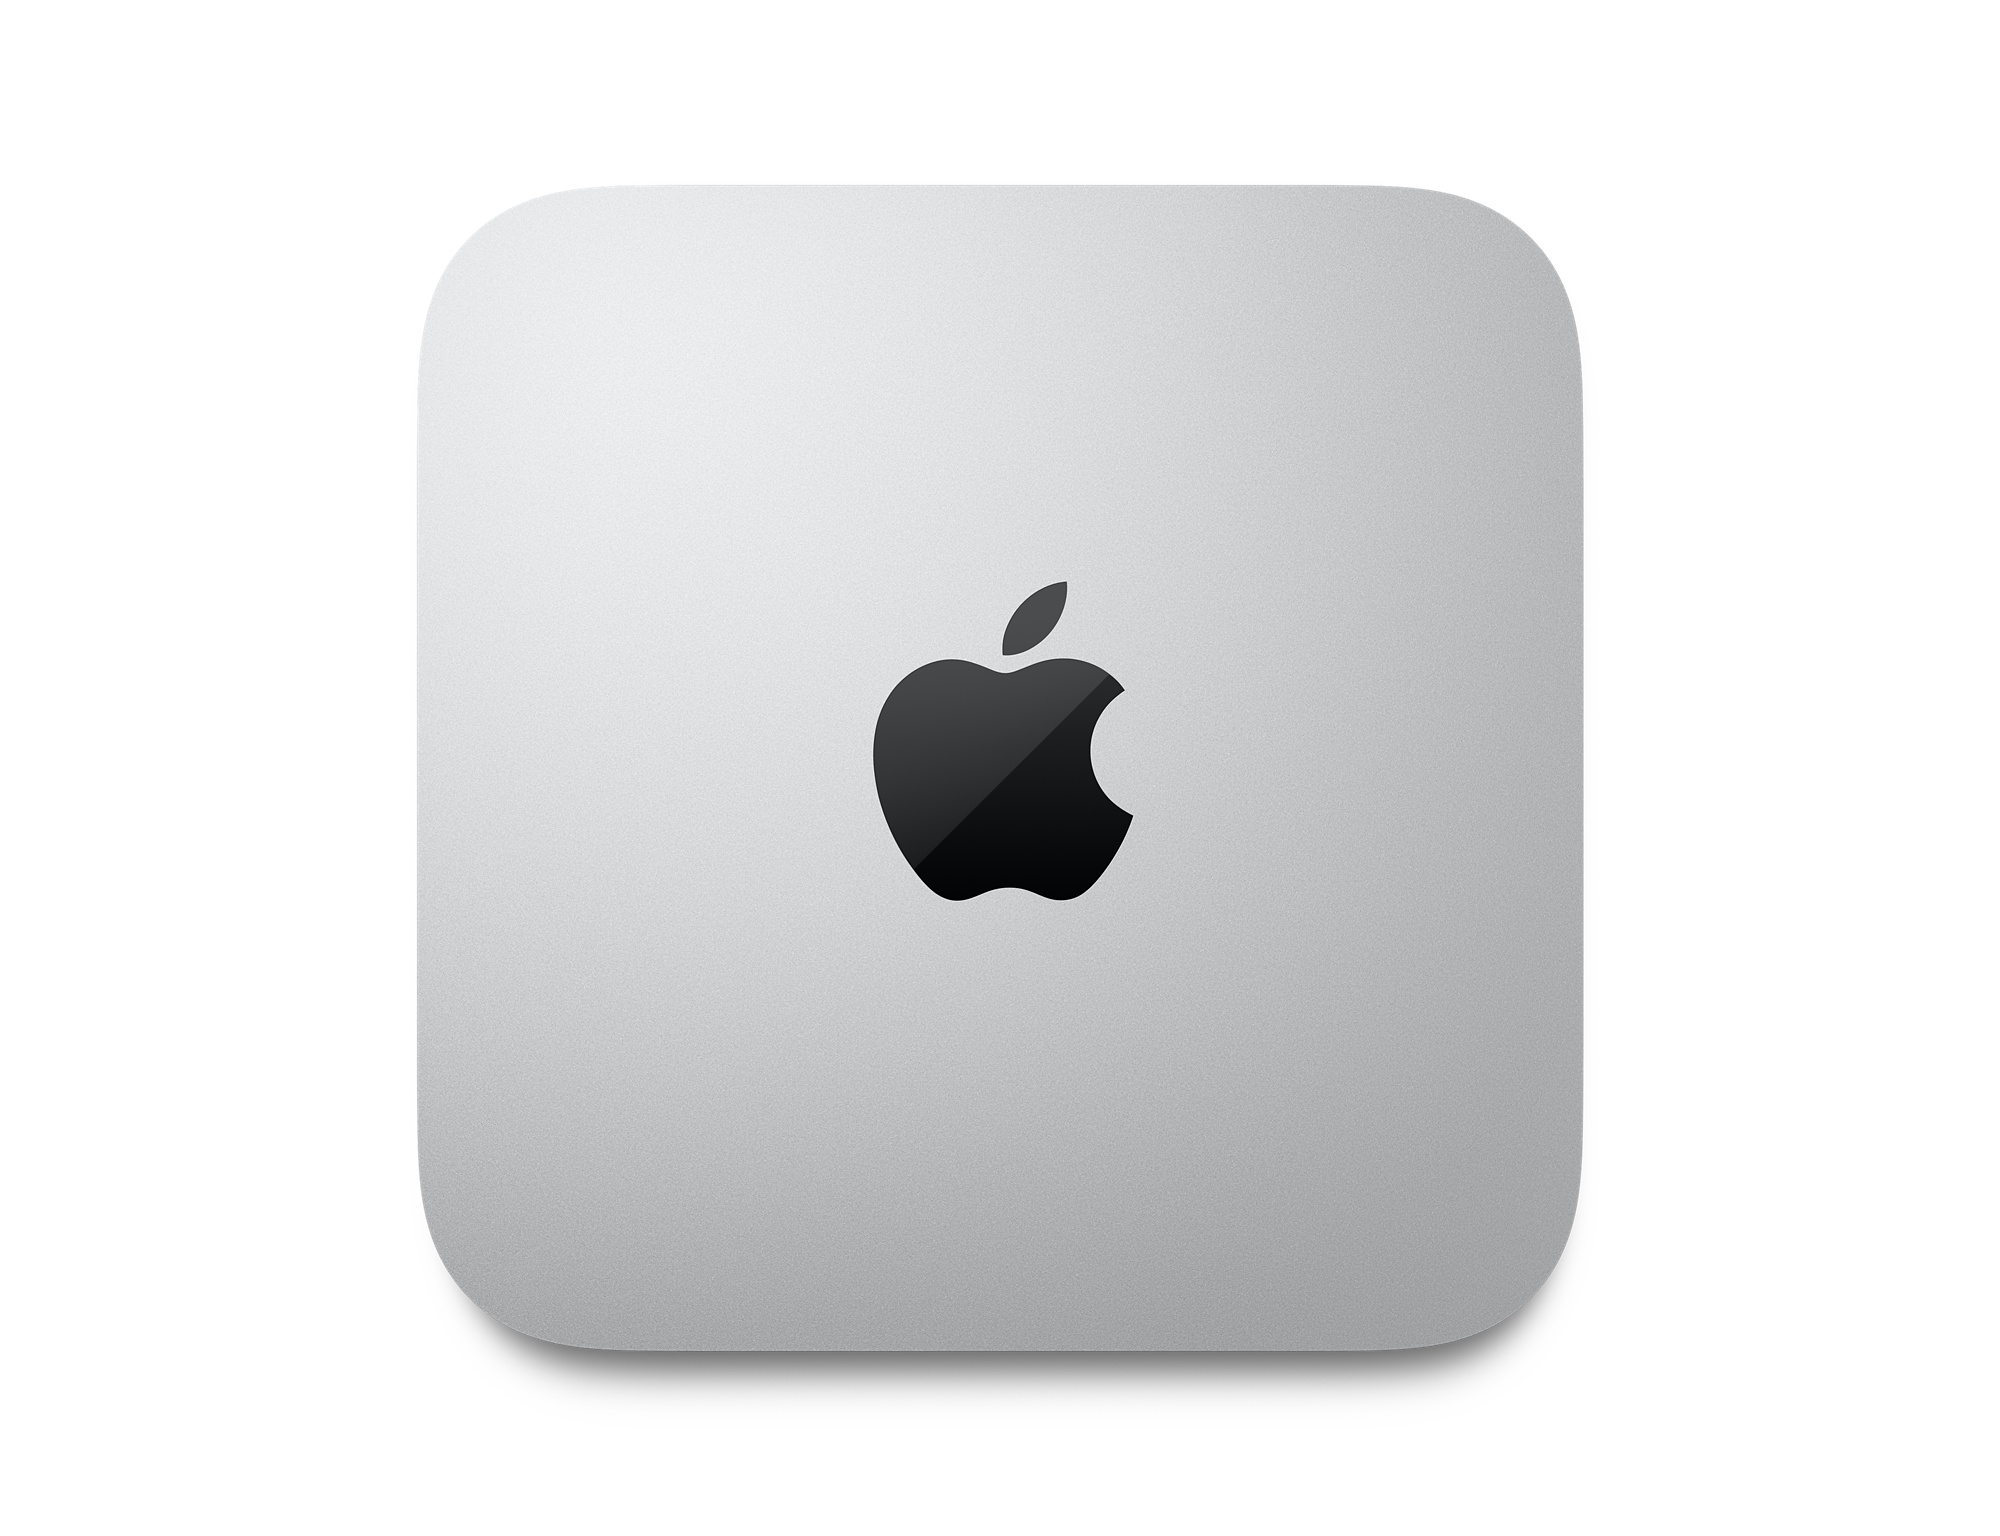 MAC MINI - Apple M1 Chip with 8-Core CPU and 8-Core GPU 512GB Storage